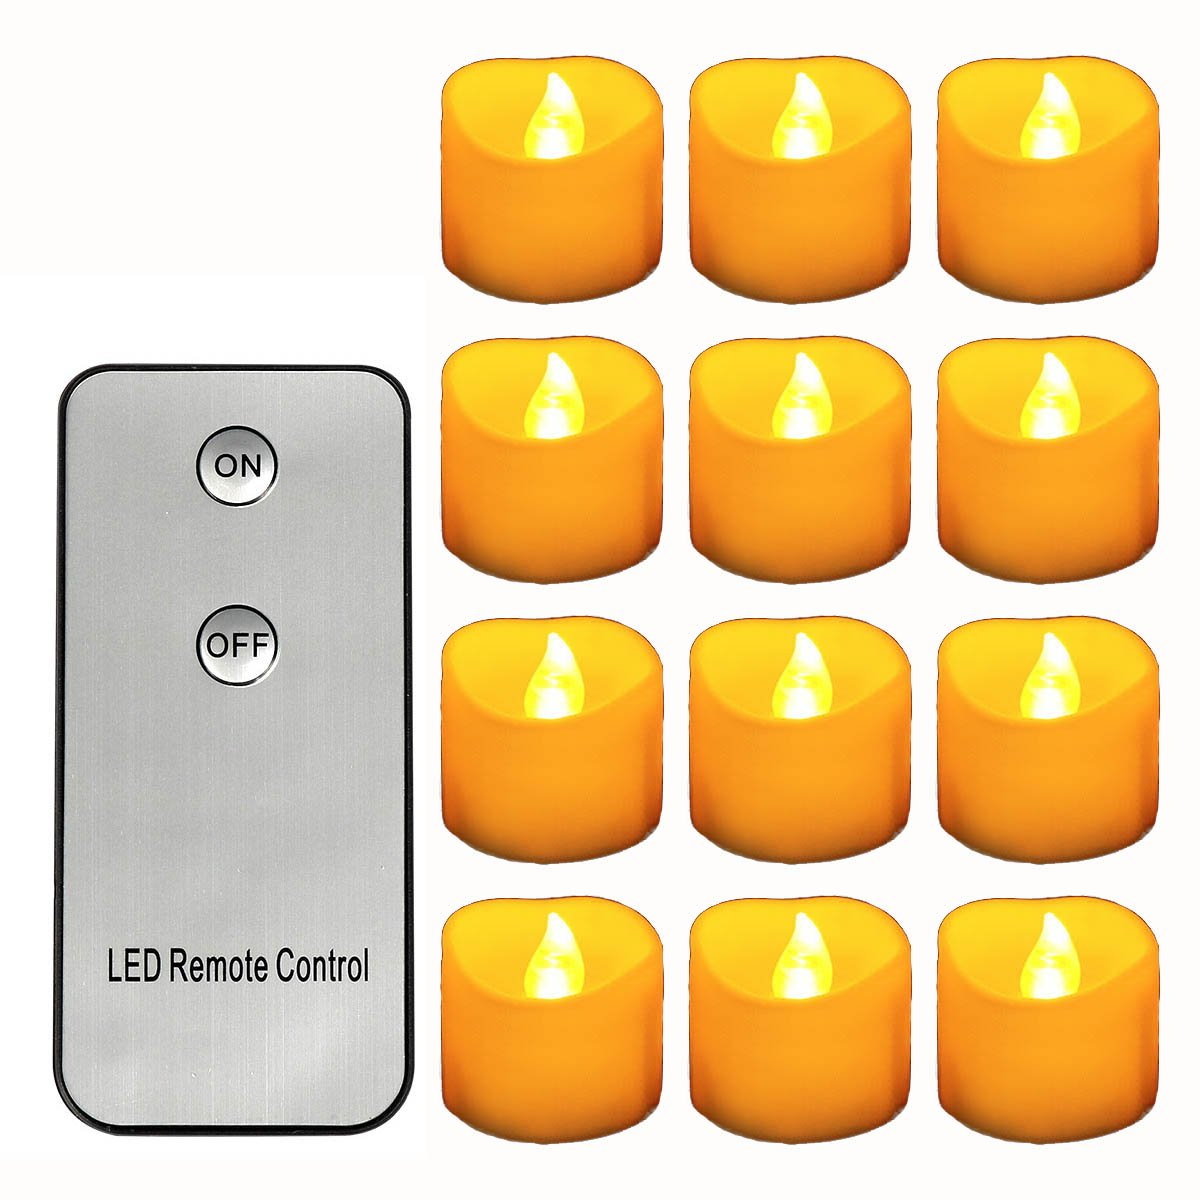 Horeset 12 pcs Yellow Flickering LED with Remote Control Tea Lights Flameless Candle, Last up to 48-60hours 1.4 x 1.4-inch for Wedding, Birthday, Home Party